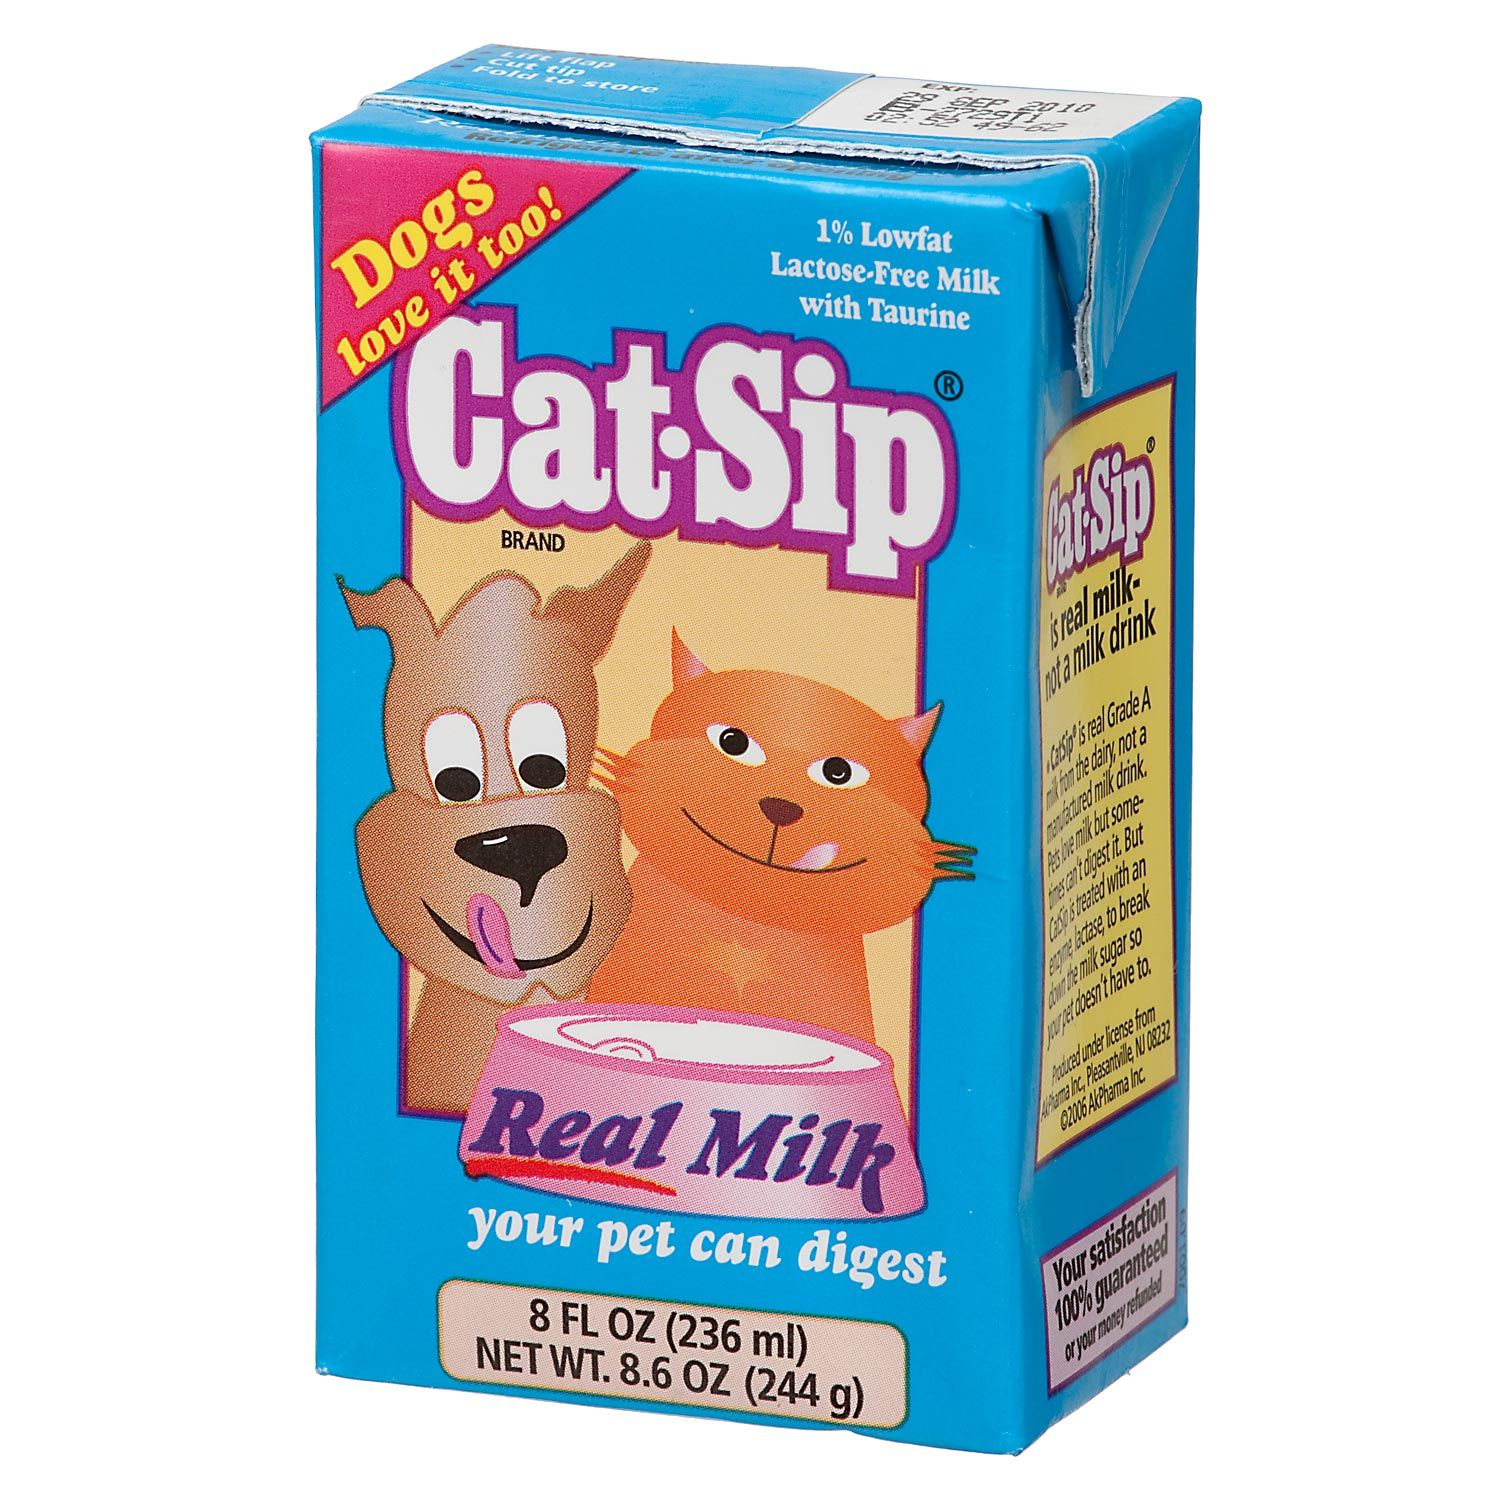 Cat Sip Real Milk My Cats Favorite Milk Without Lactose Pets Cat Food Storage Cats And Kittens